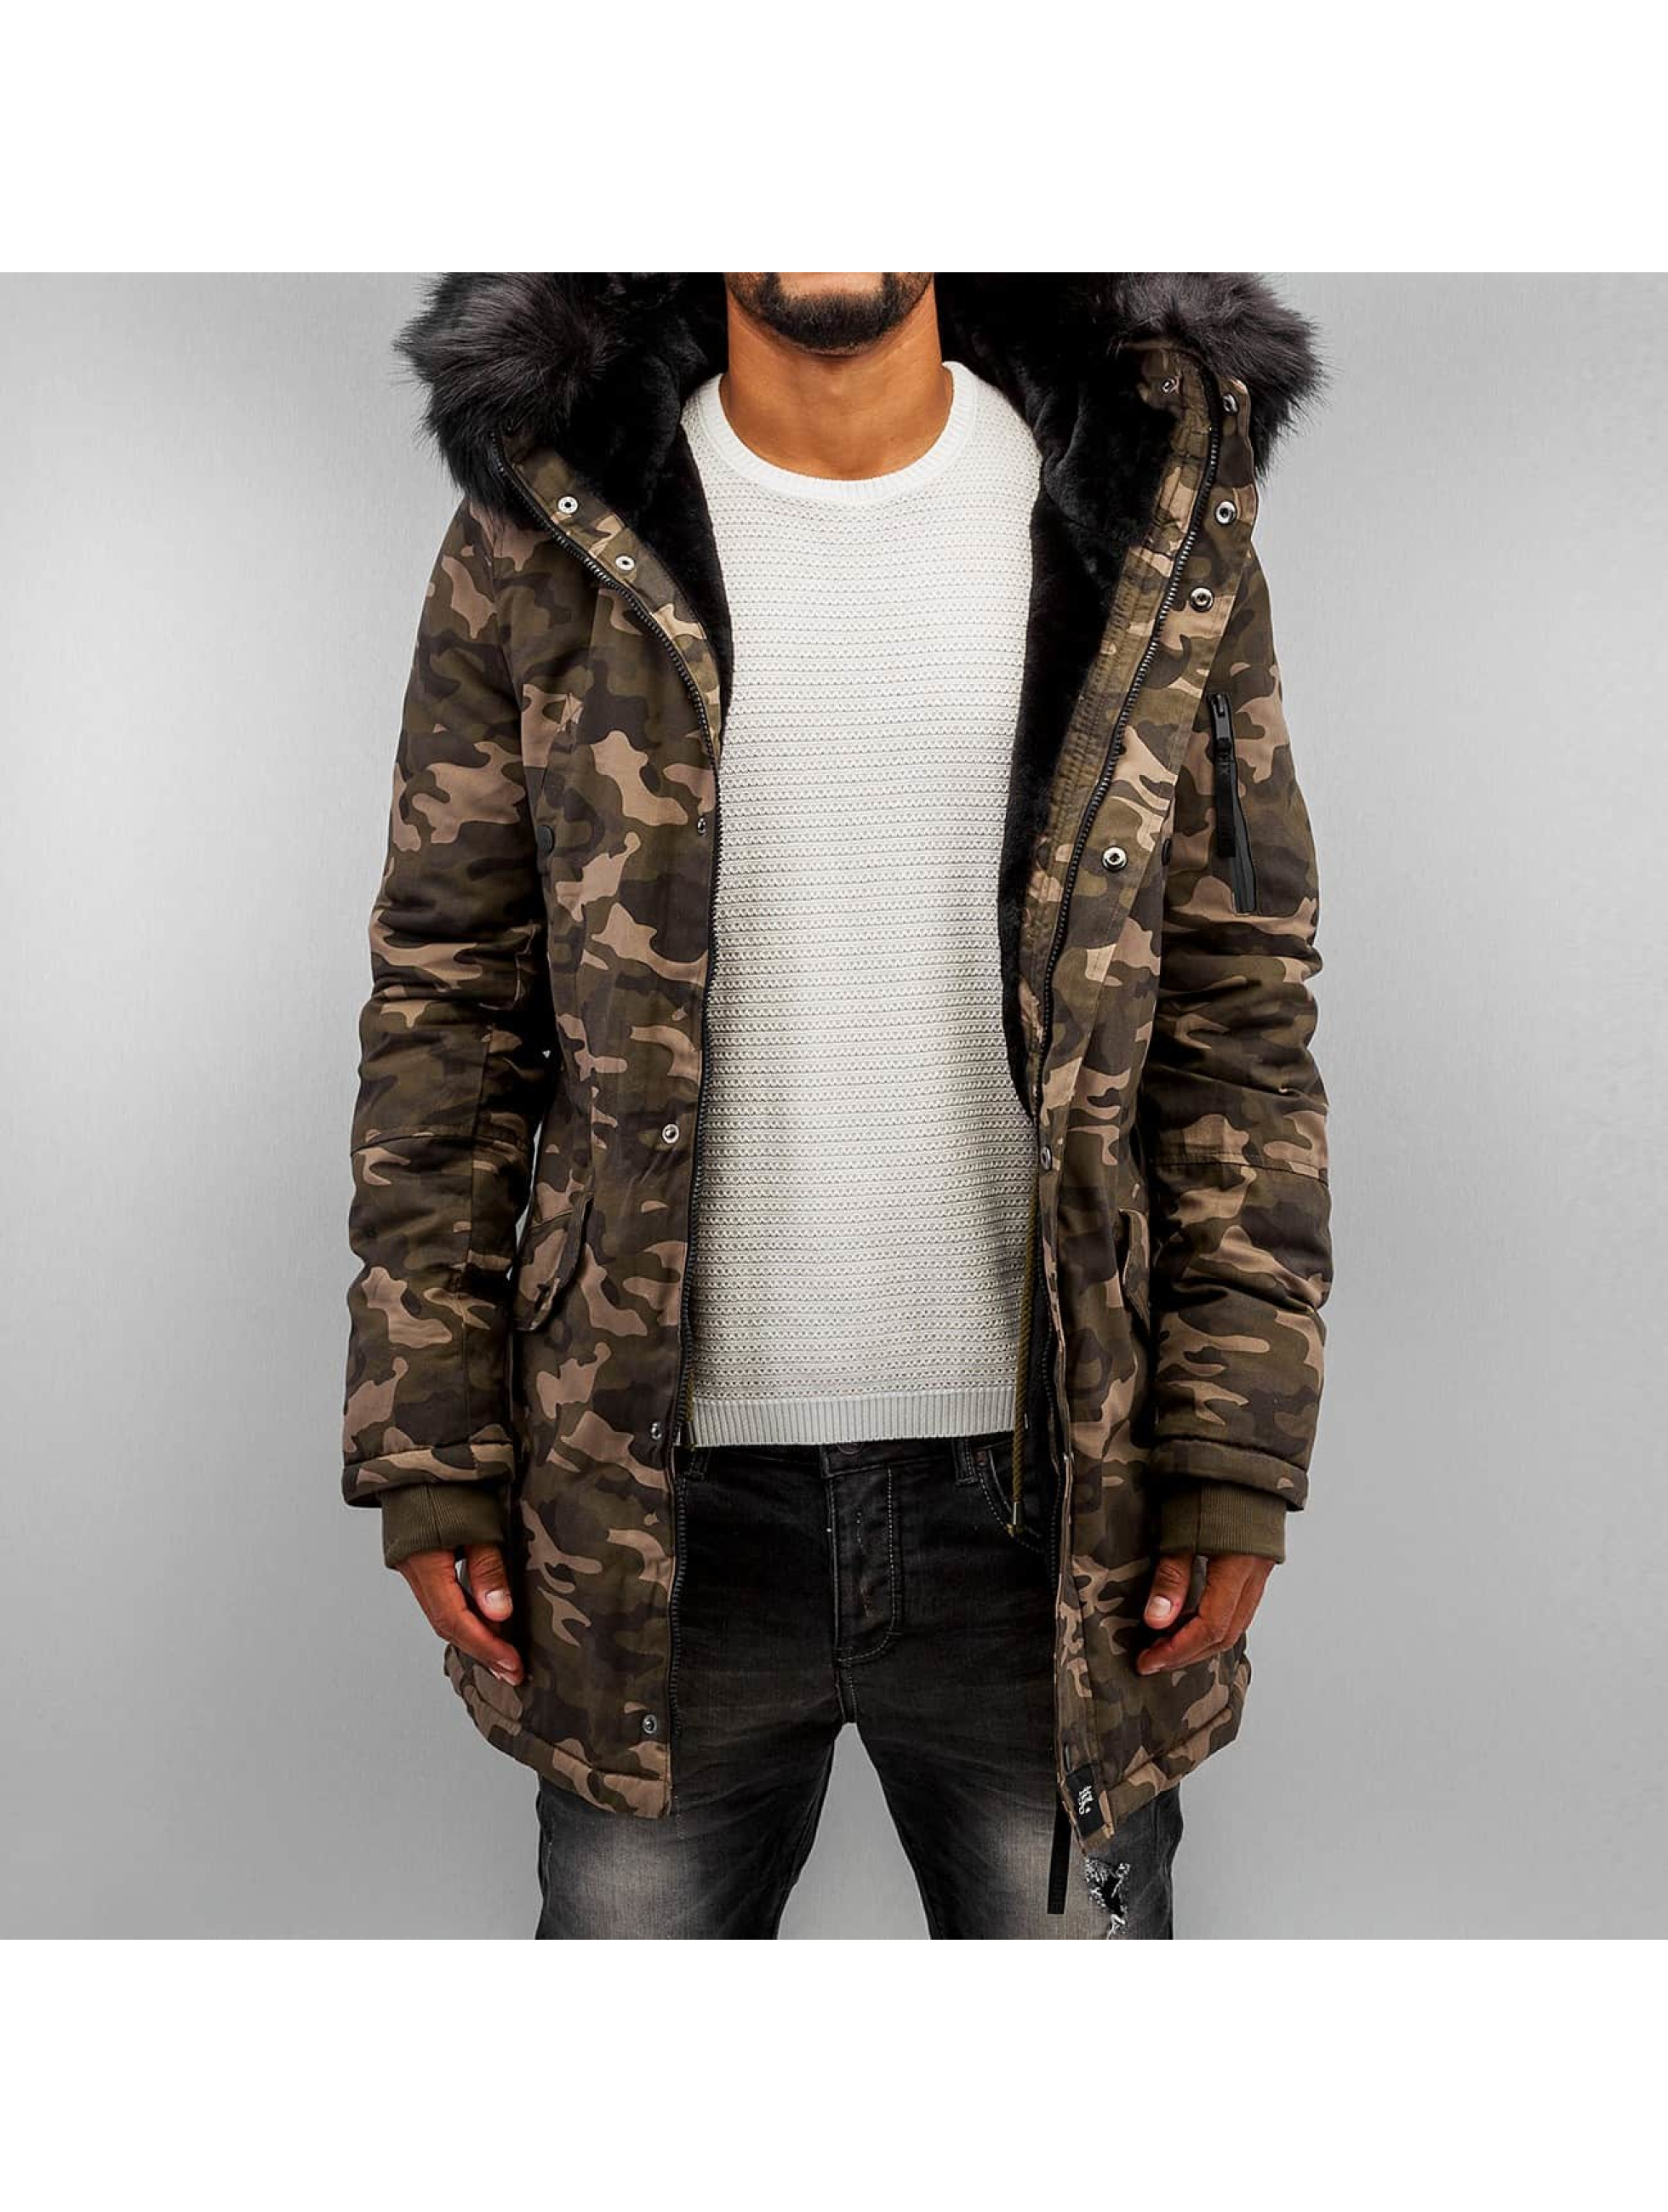 Winterjacke Fur in camouflage